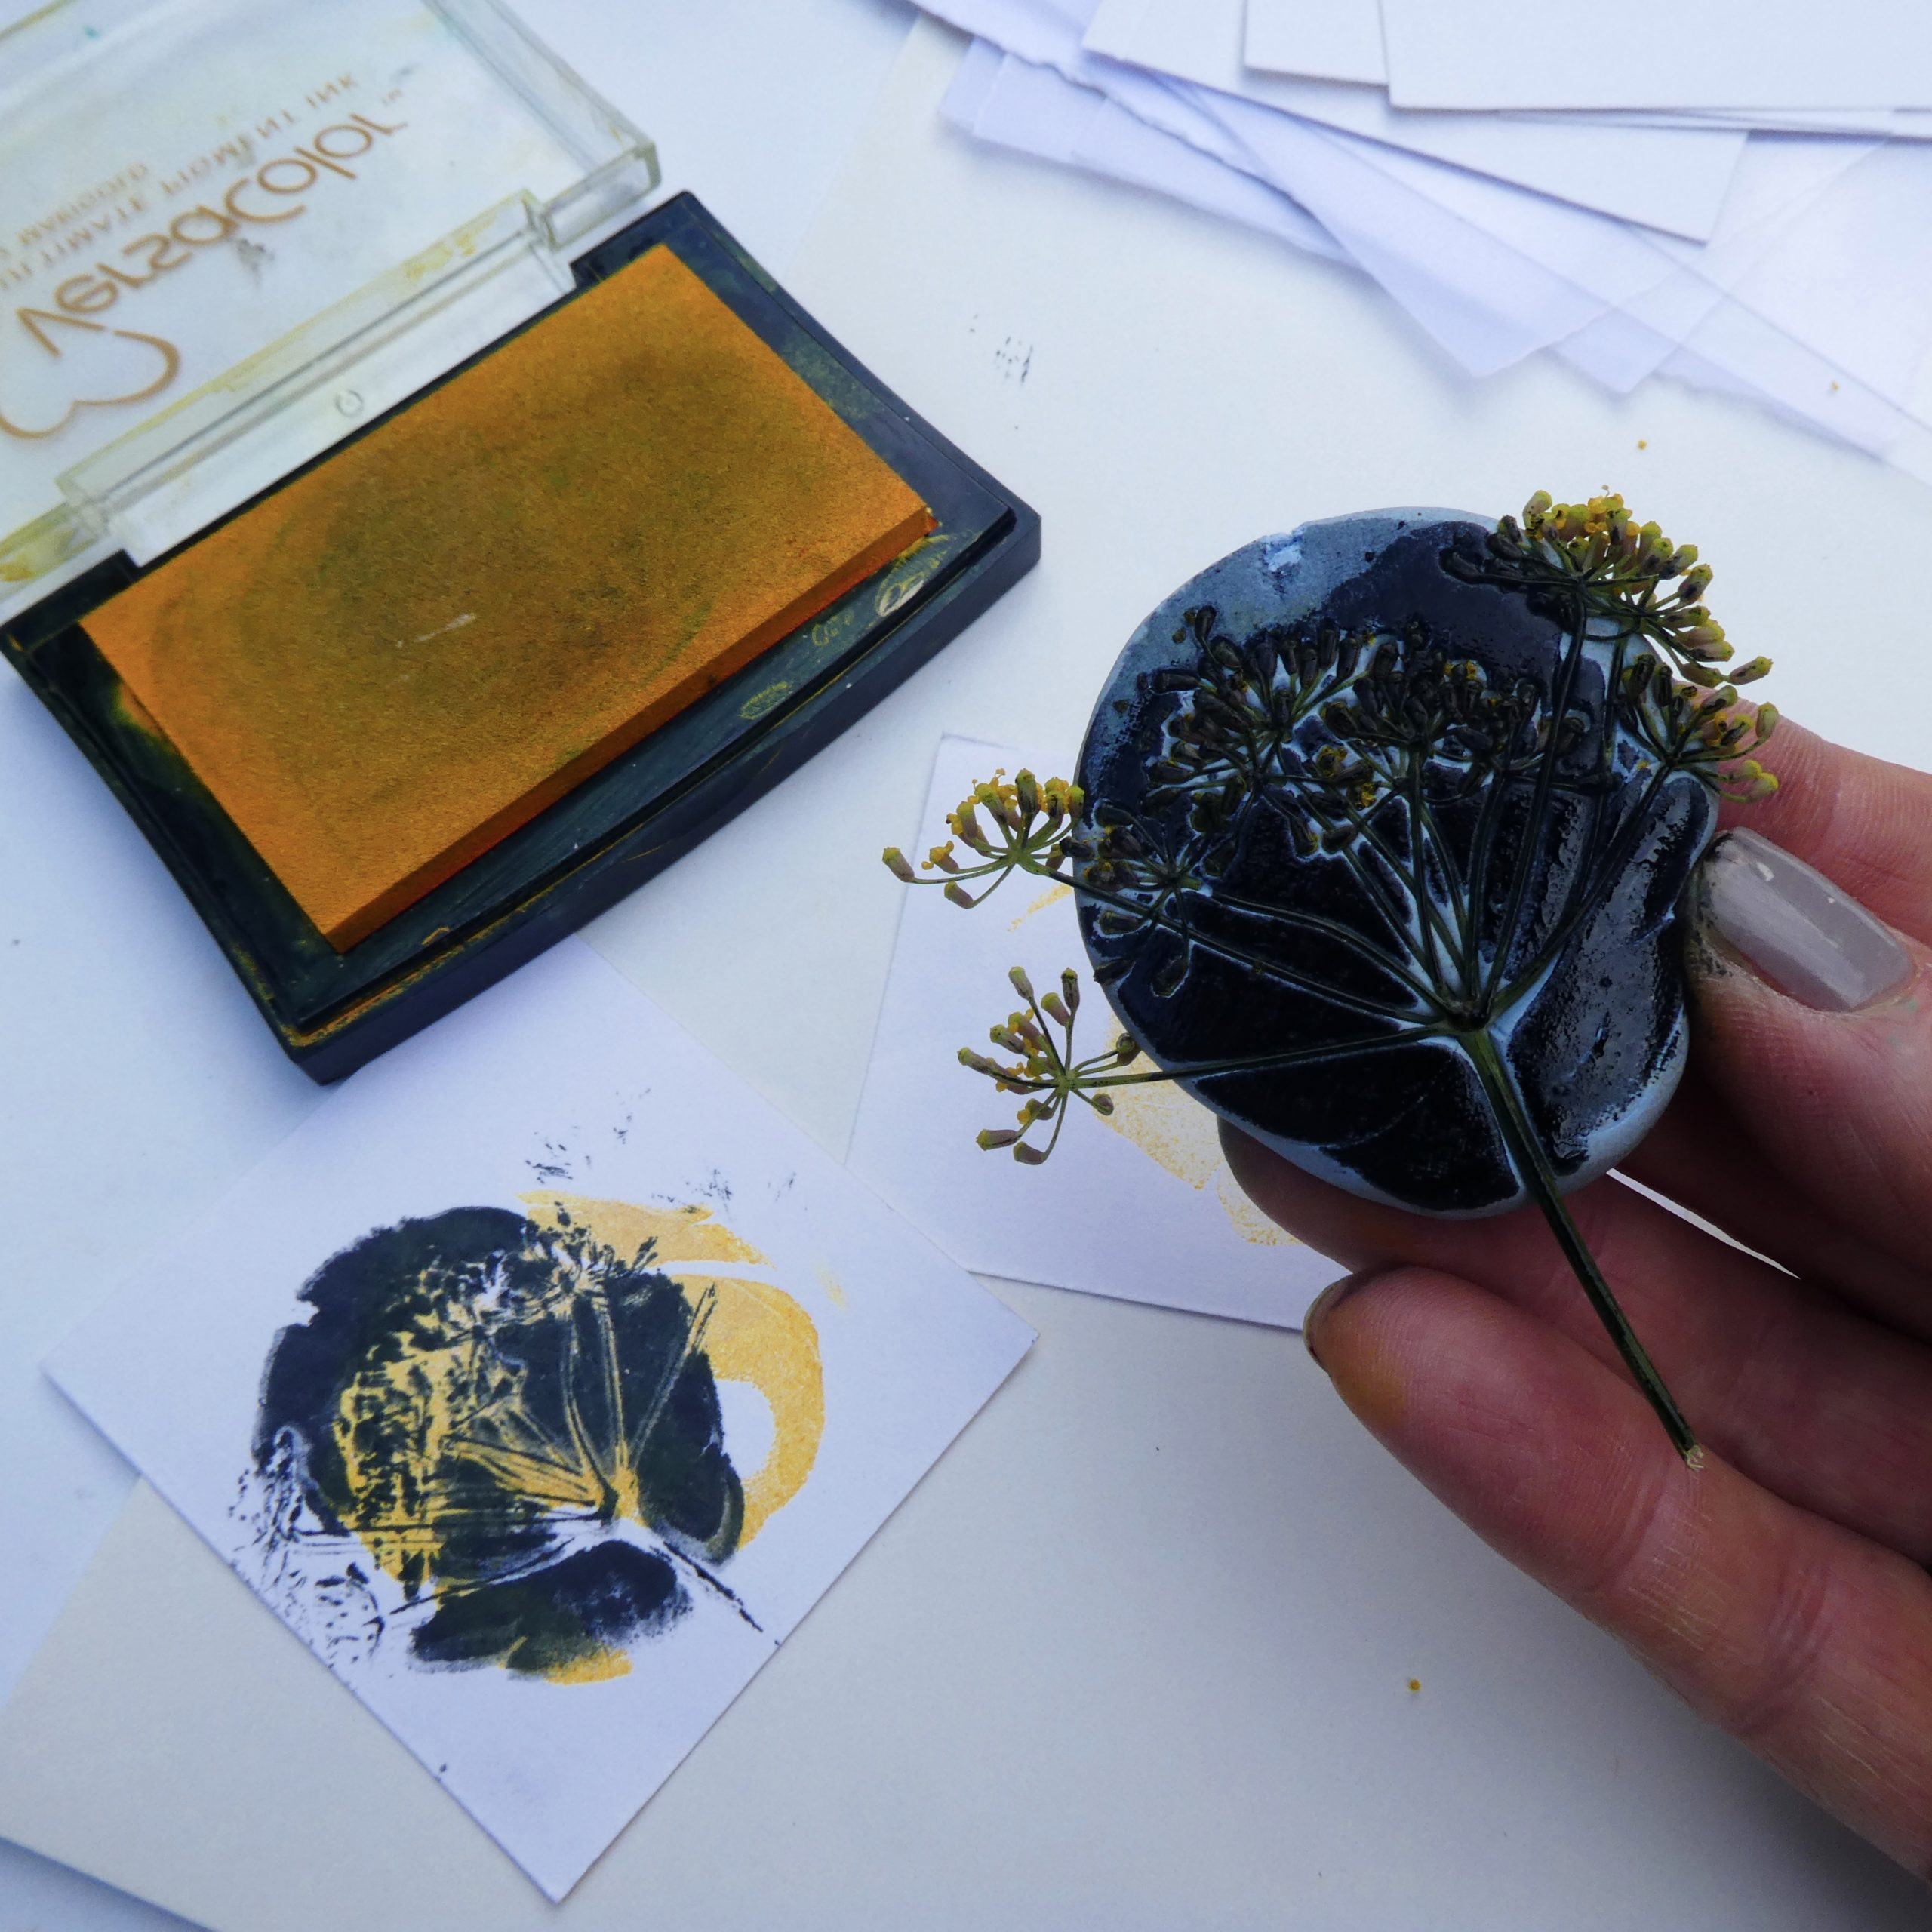 A hand holds an inked up Blutack with seed head and in front is the print made using it